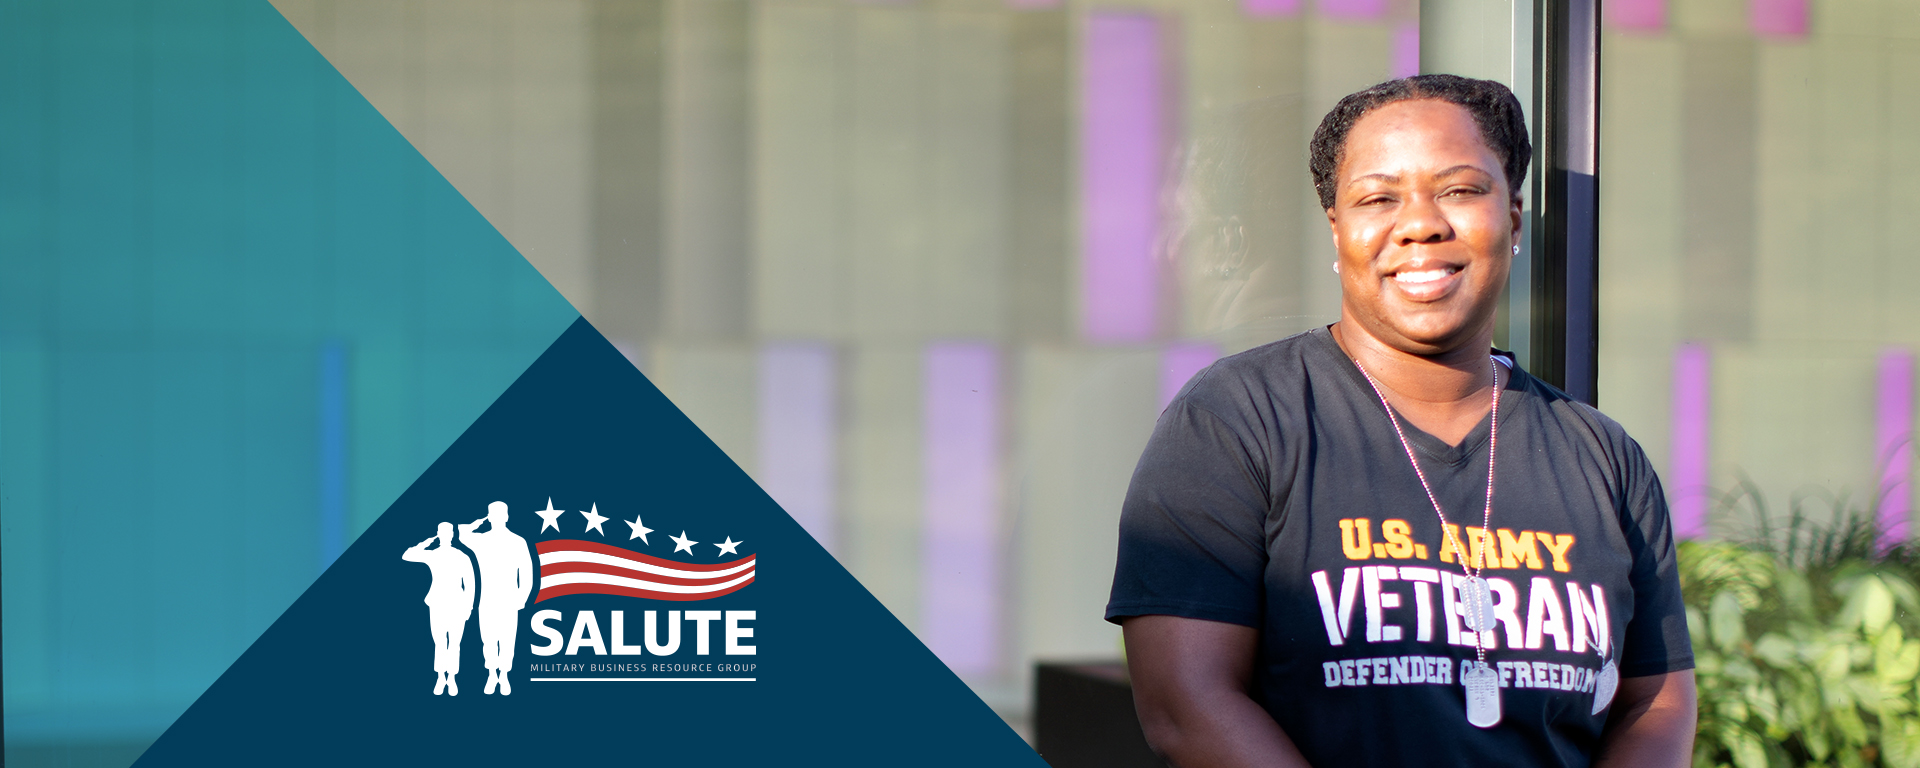 Capital One associate enjoys the weather outside and talks about her experience being supported as a veteran at Capital One